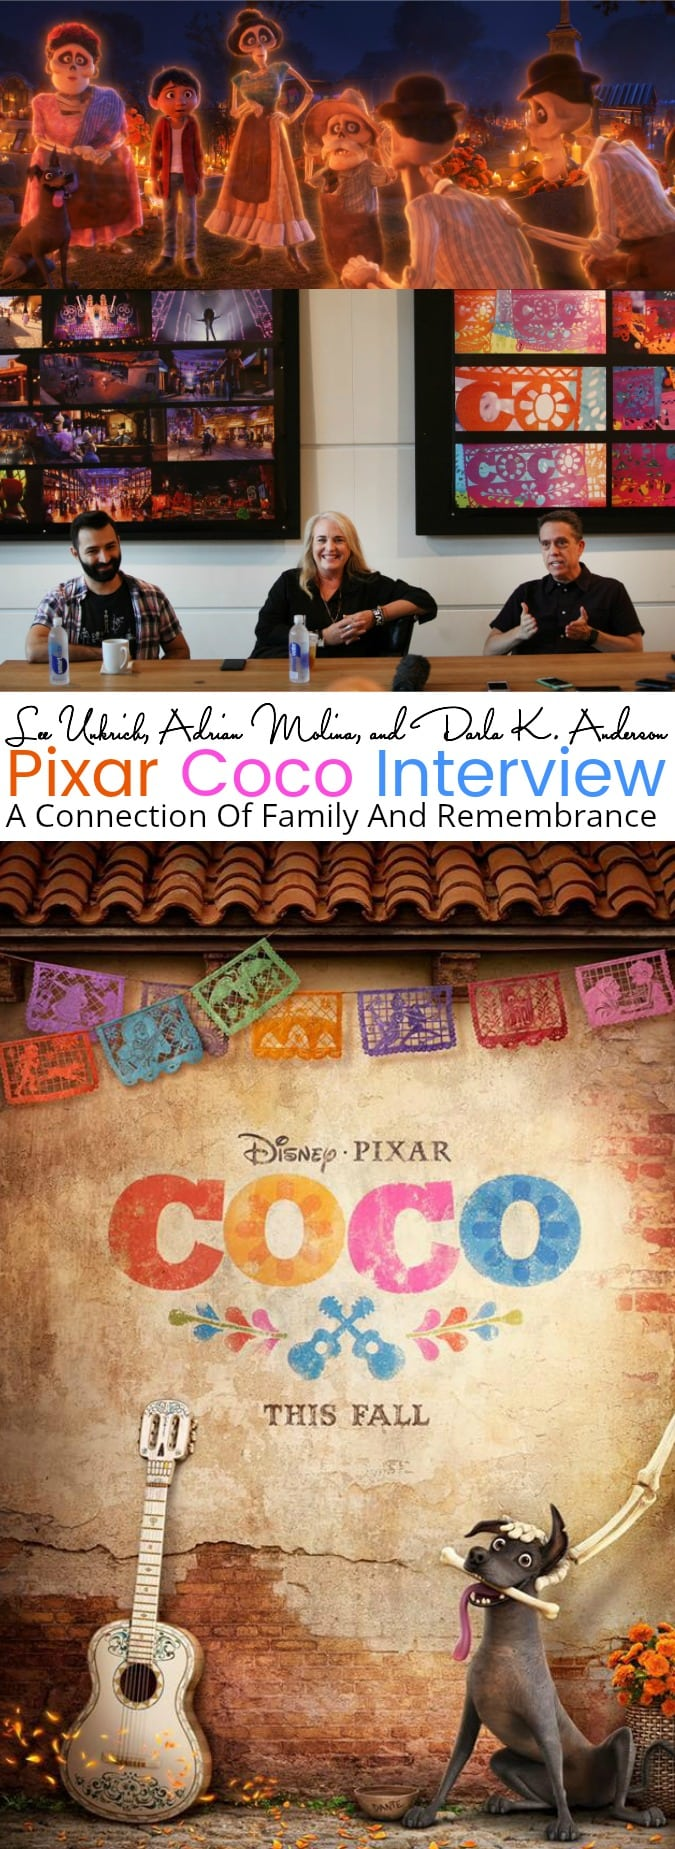 Lee Unkrich, Adrian Molina, and Darla K. Anderson Pixar Coco Interview | A Connection Of Family And Remembrance #PixarCOCOEvent - abccreativelearning.com